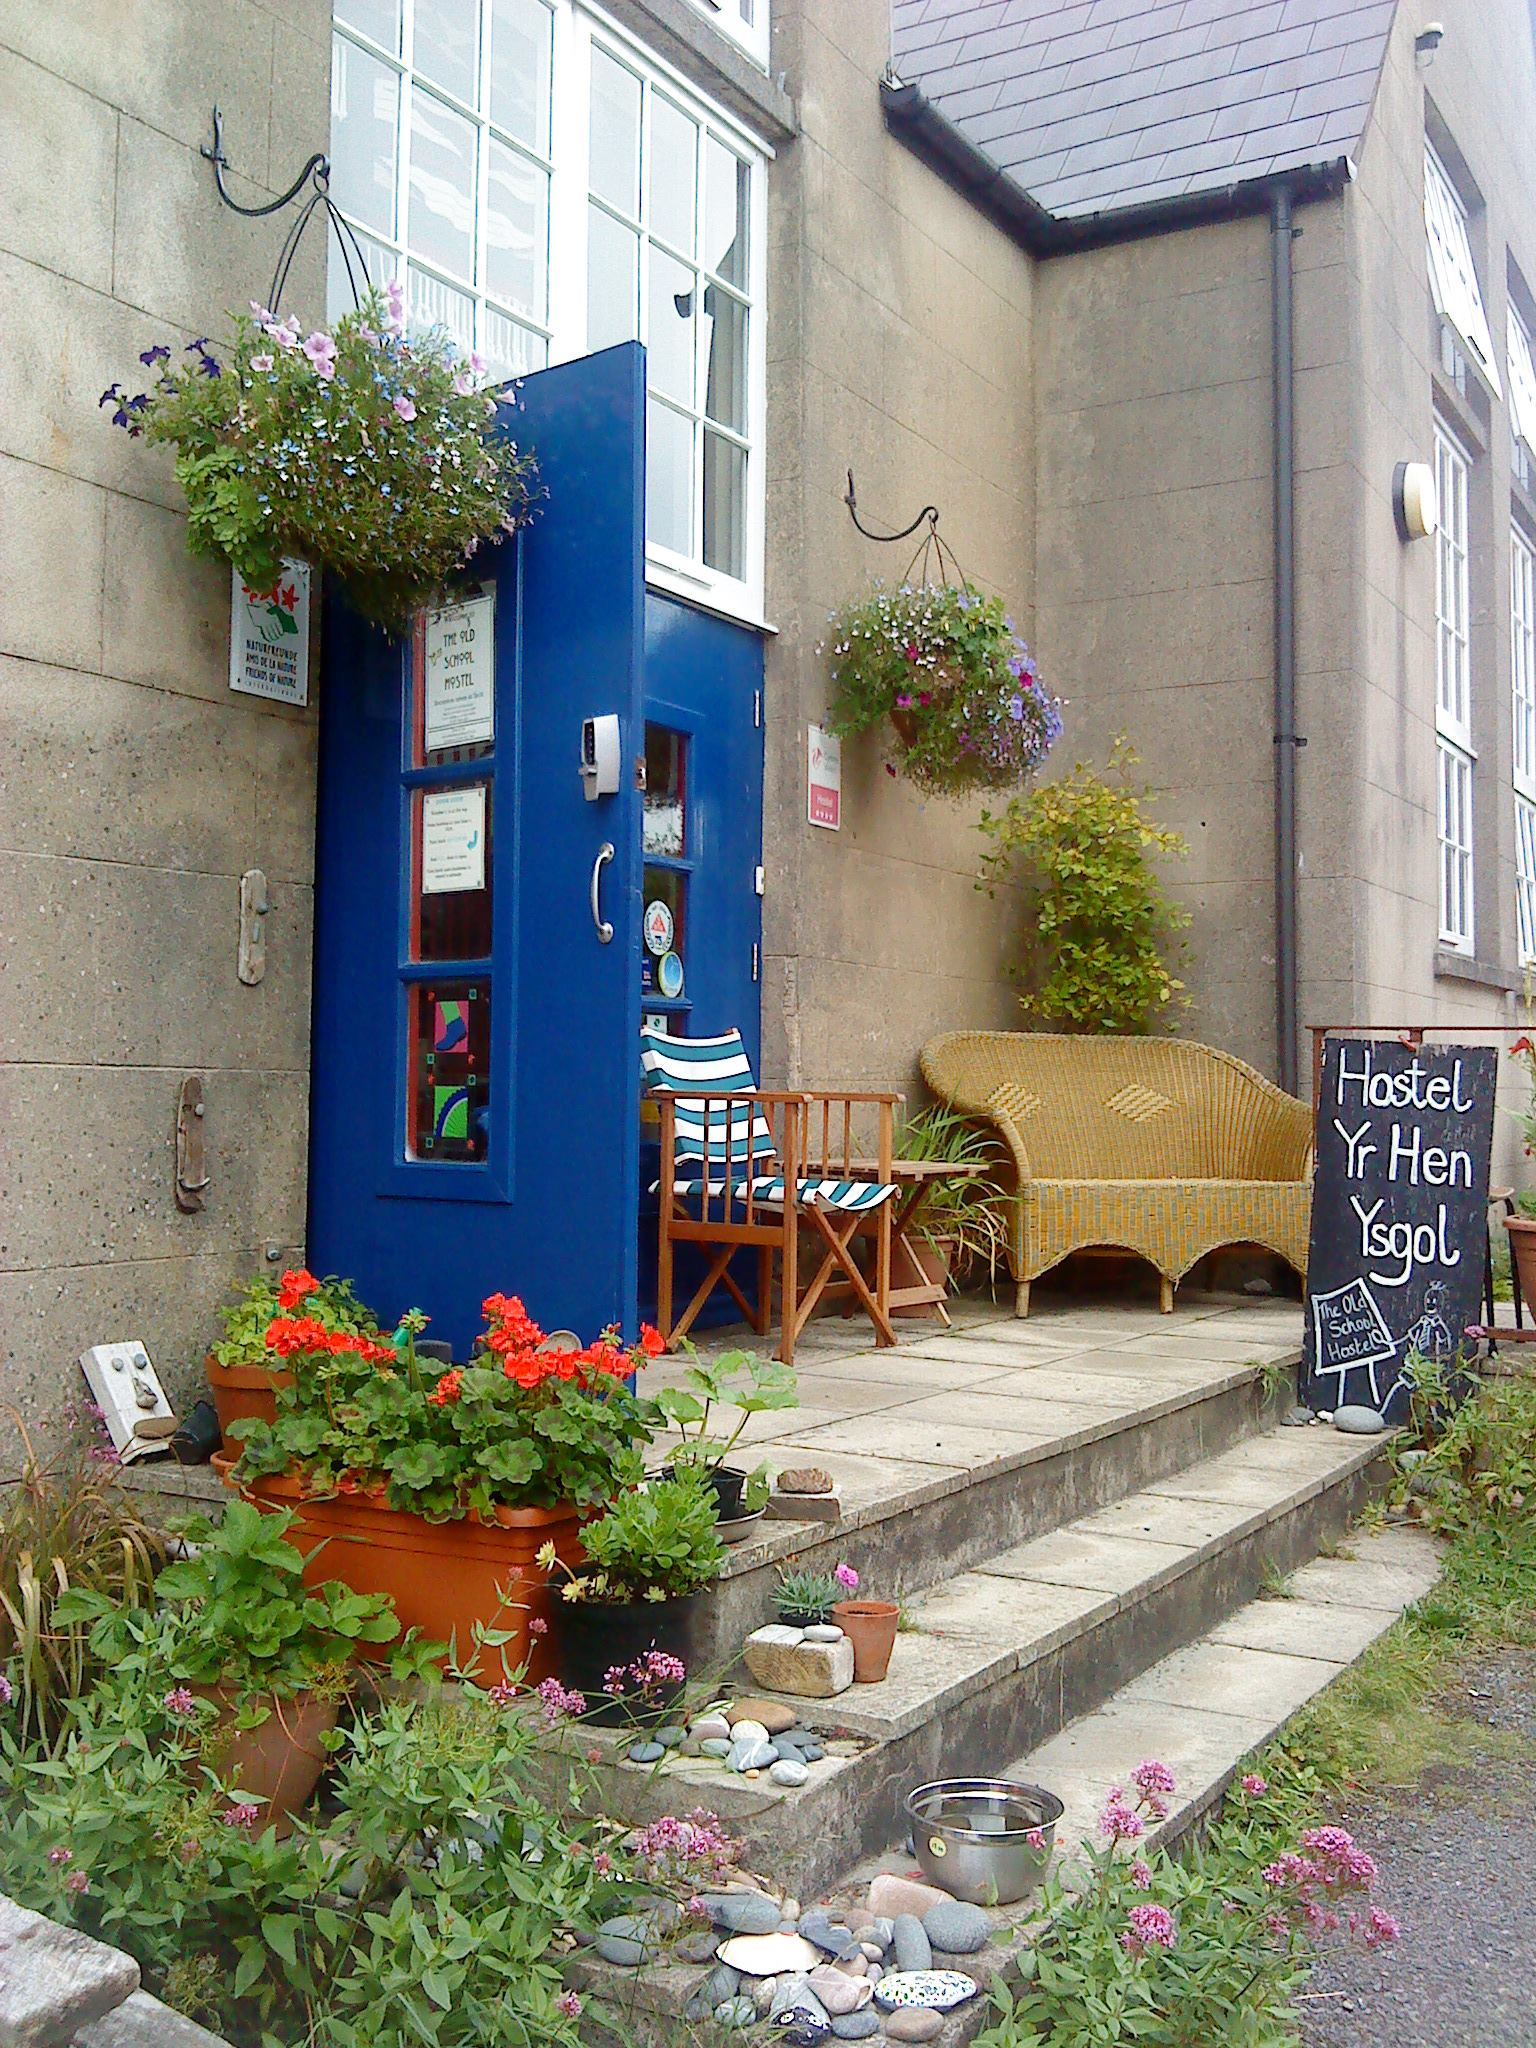 Double rooms available at The Old School Hostel Pembrokeshire, near St Davids